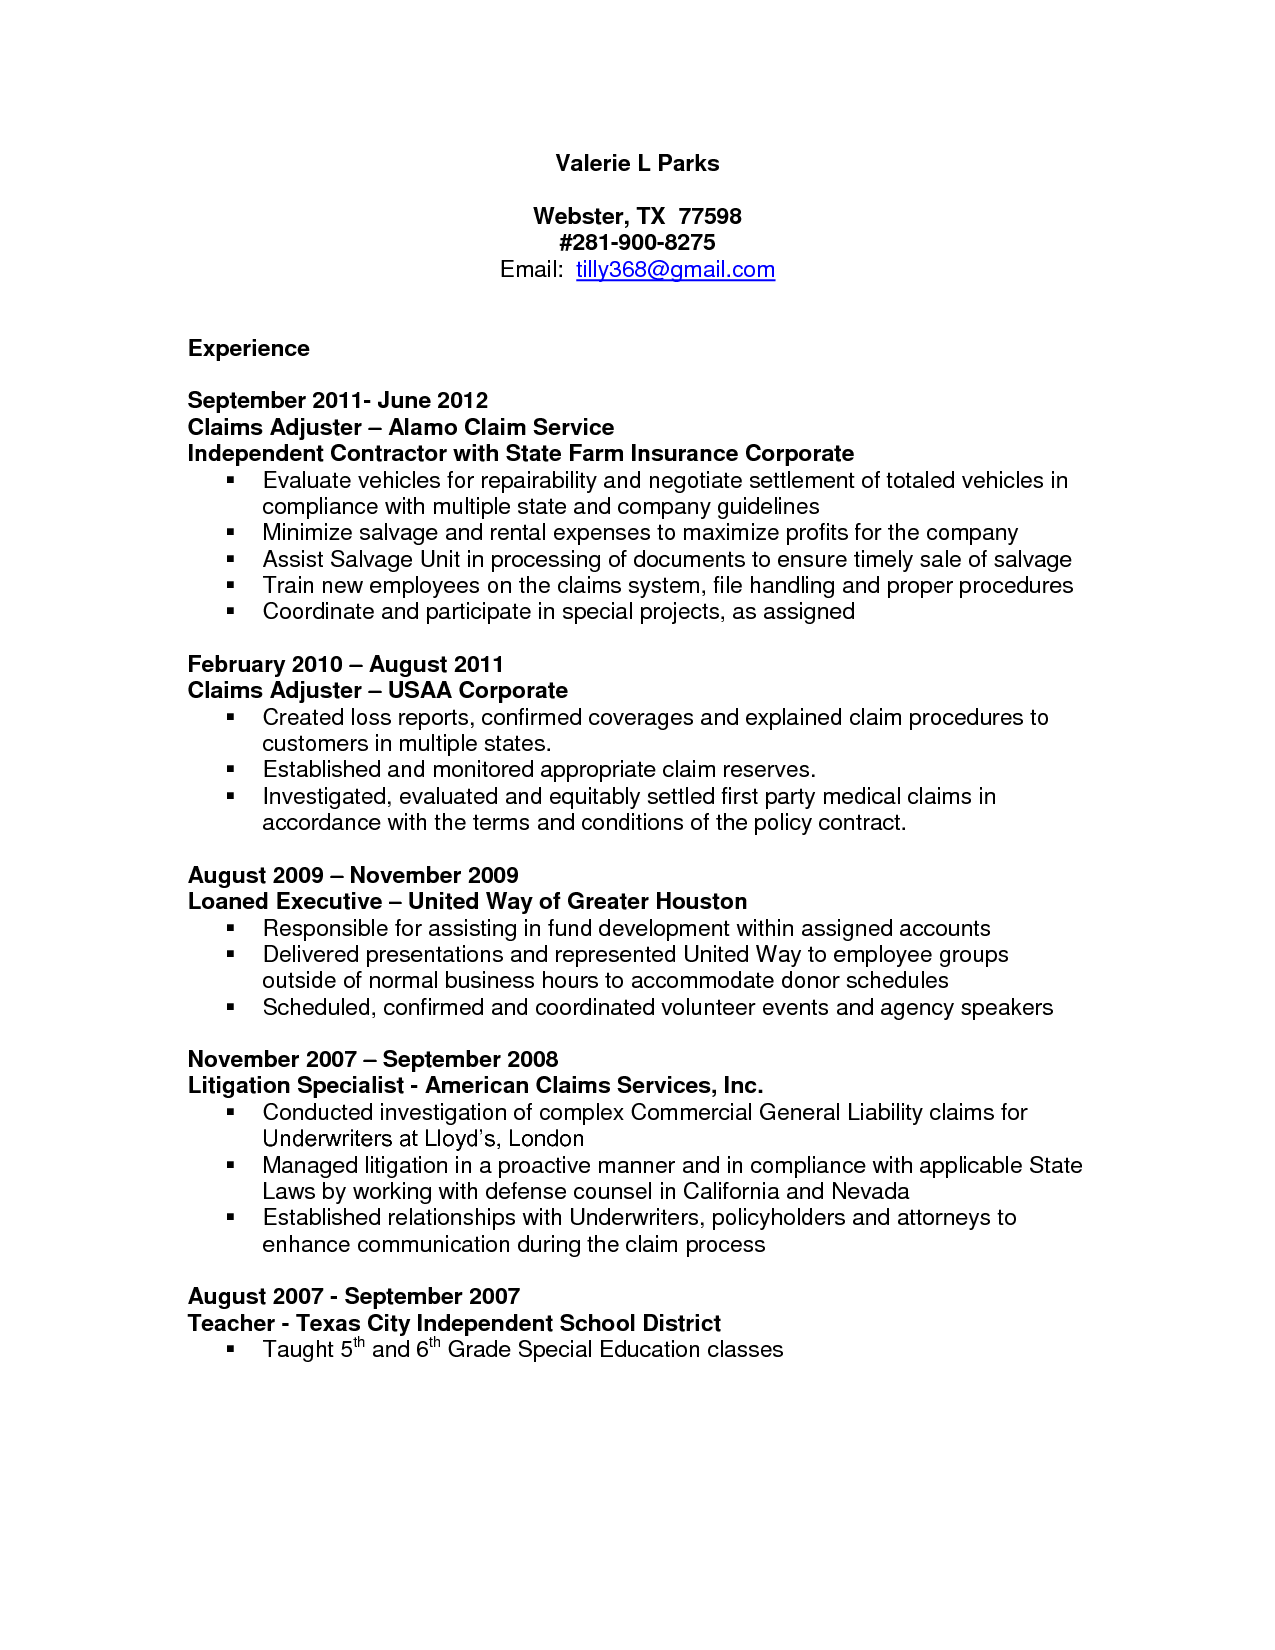 Claims Adjuster Resume Sample